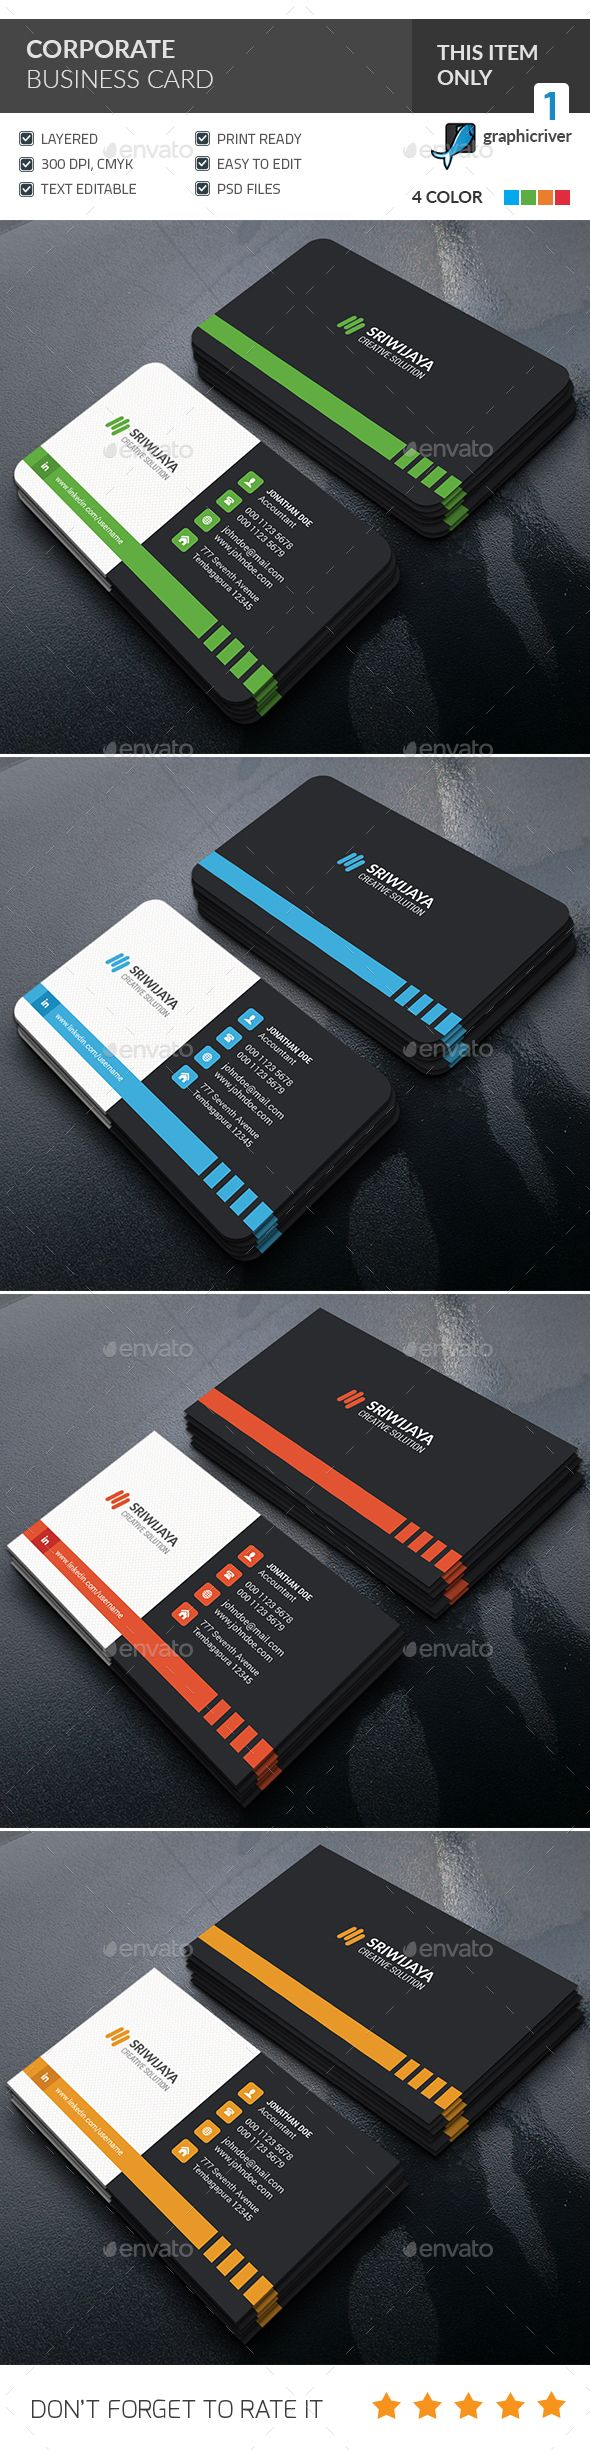 Corporate Business Card — Photoshop PSD #creative #light • Available here → https://graphicriver.net/item/corporate-business-card-/14319990?ref=pxcr